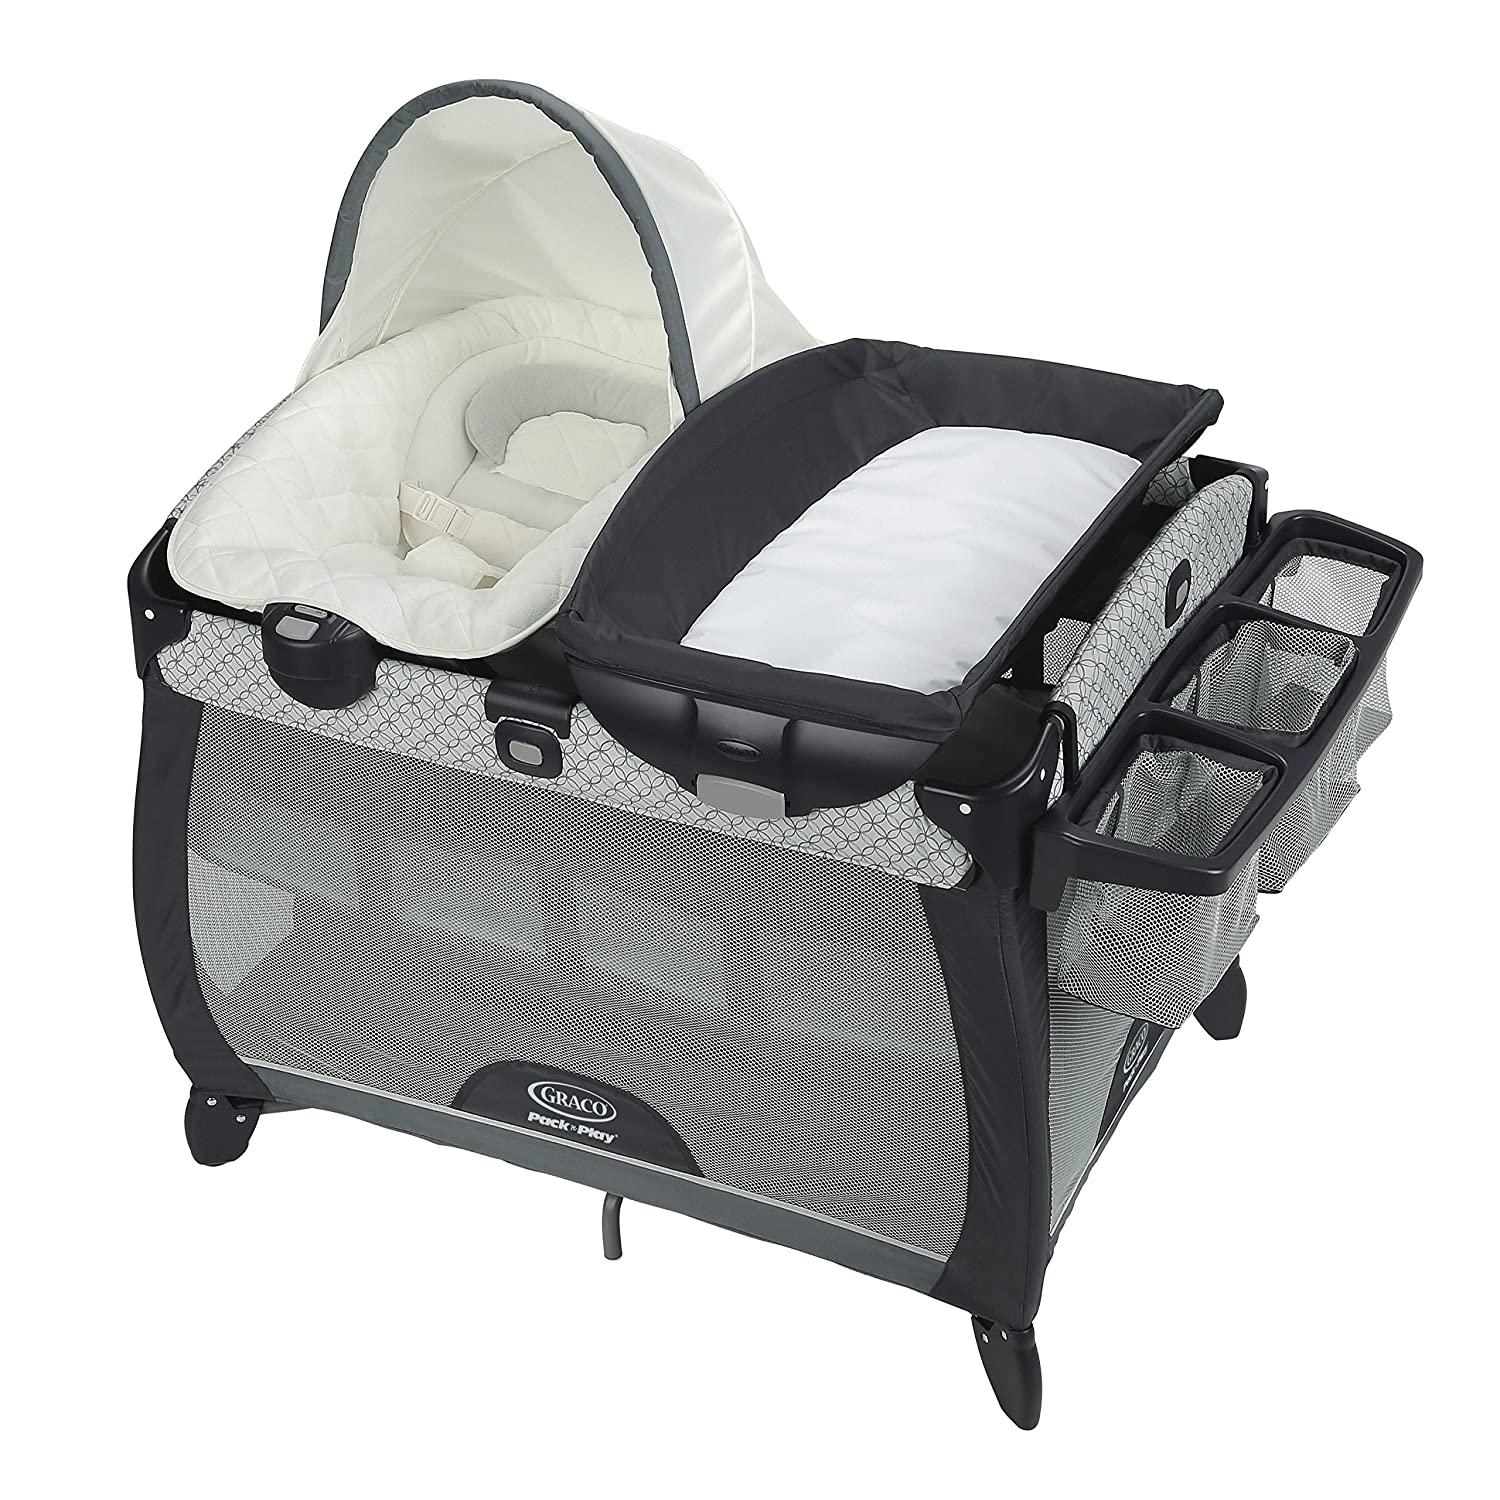 McKinley Graco Pack n Play Playard Quick Connect Portable Seat Deluxe